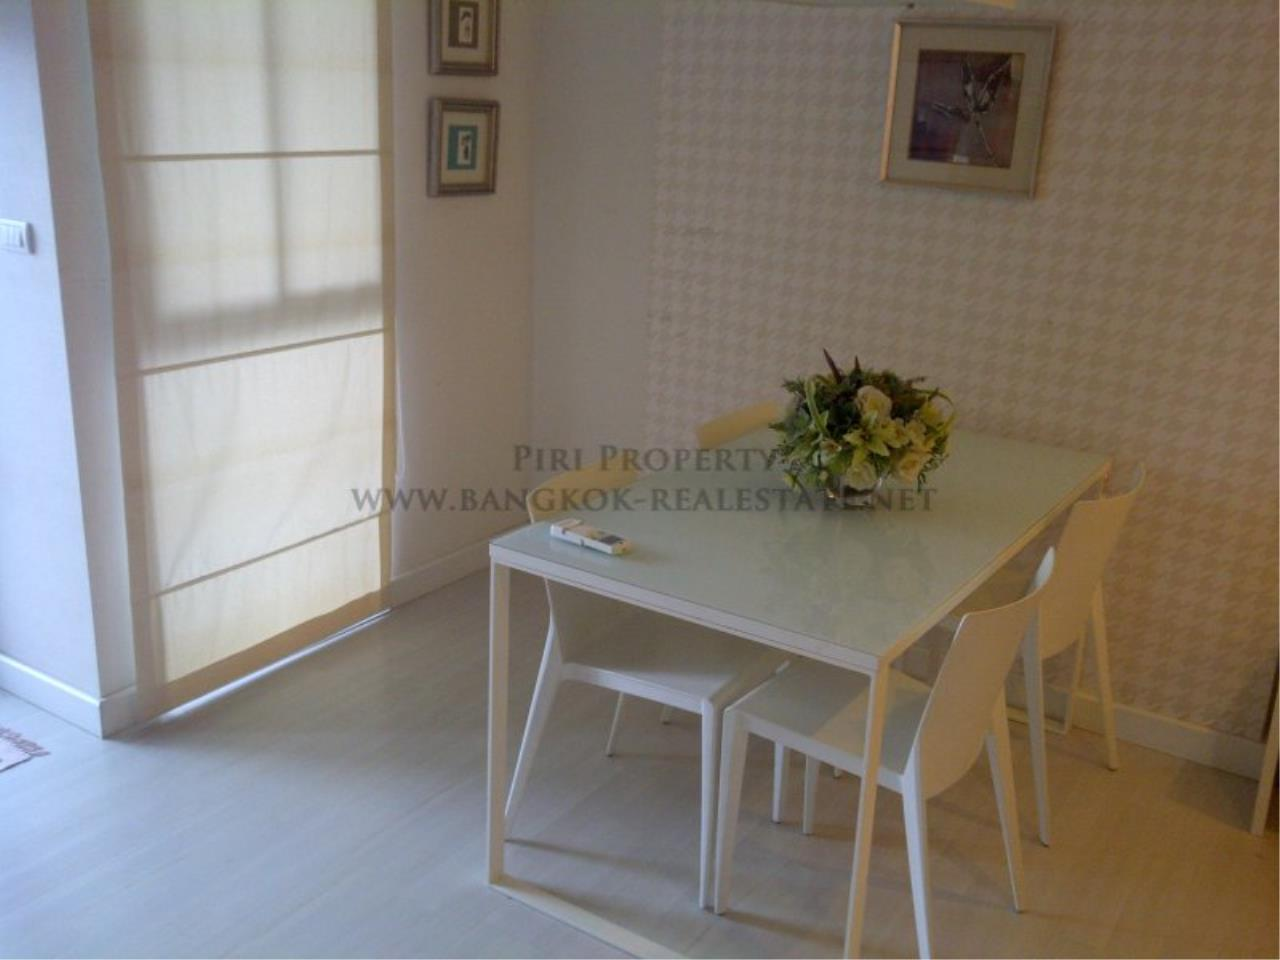 Piri Property Agency's The Room Lad Prao - 2 Bedroom on High Floor - 61SQM - 25K 7